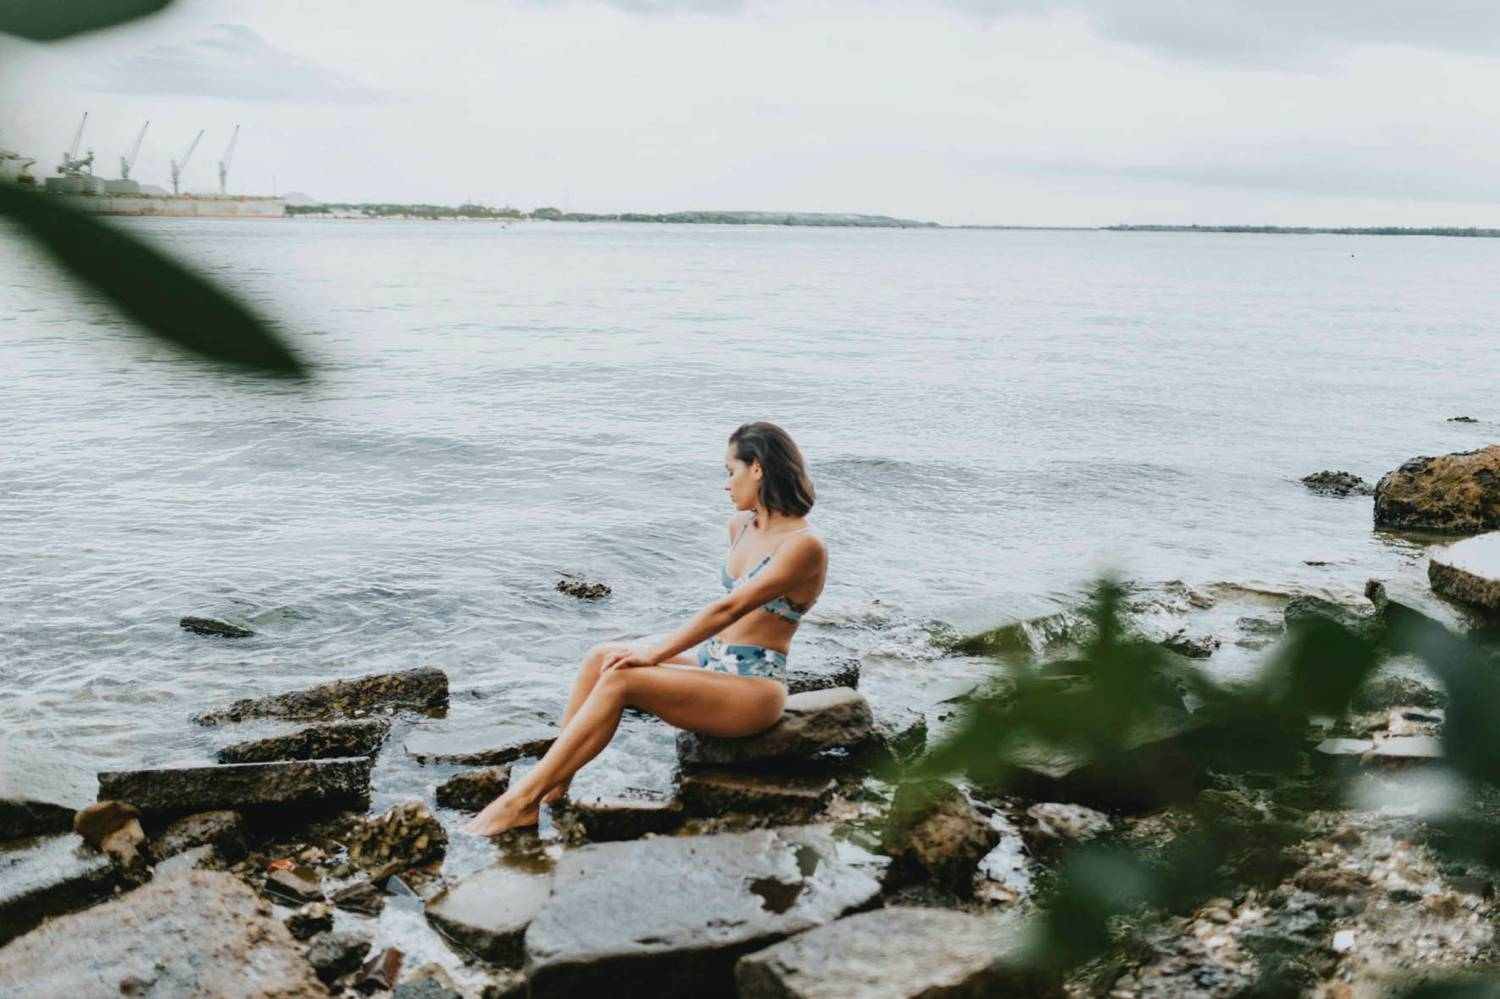 Photo: Grace Jicha's portrait of a woman in a blue bikini sitting on a rock at the edge of a lake.